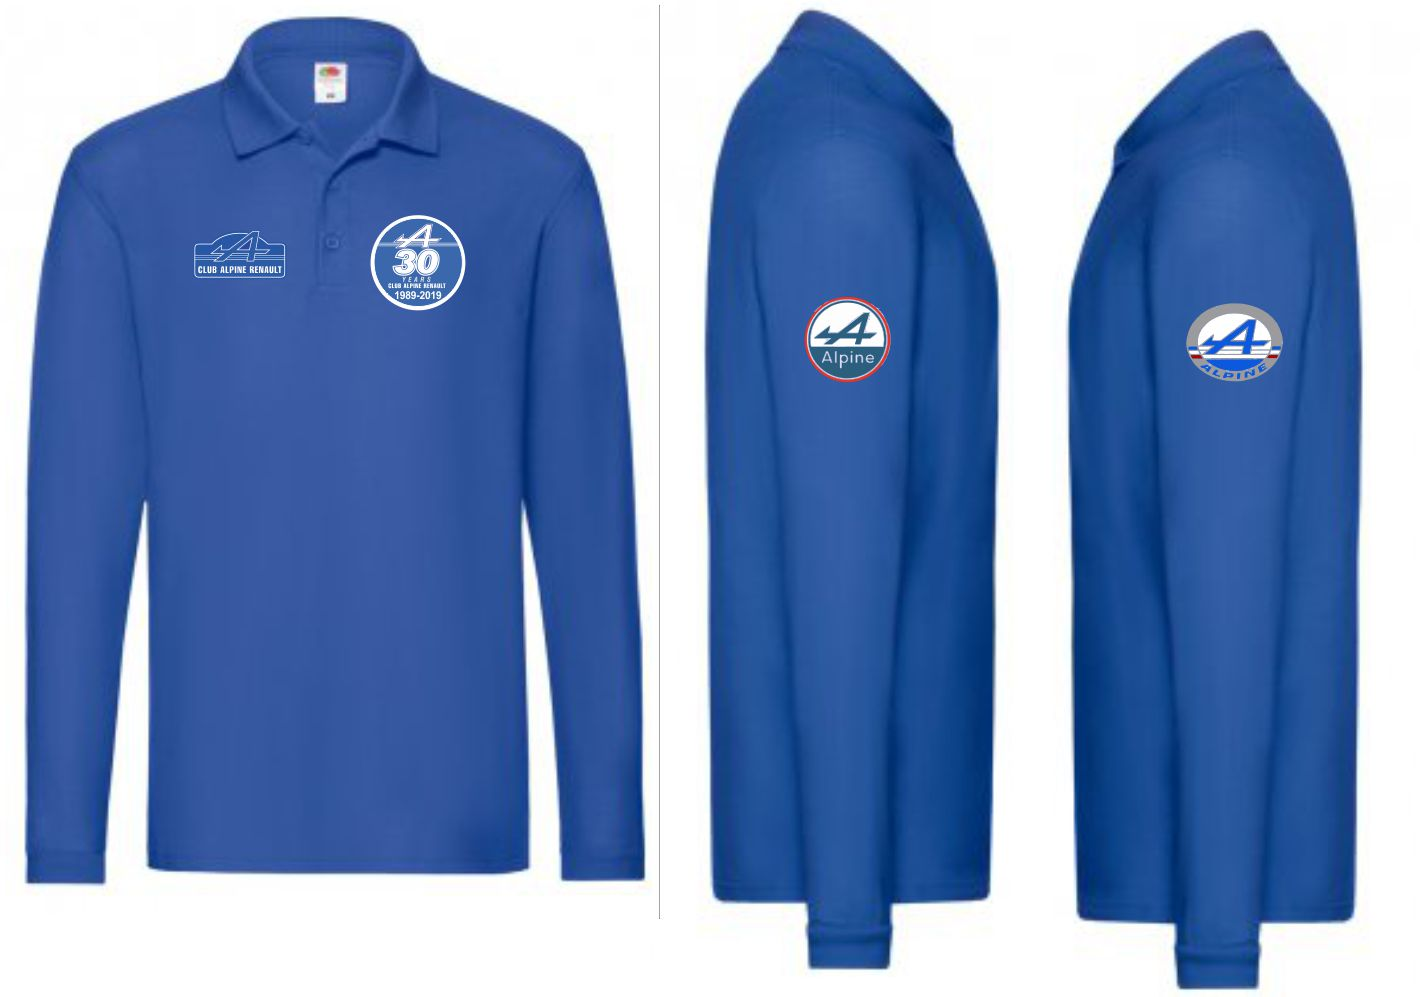 Alpine Renault 30th Anniversary long sleeve polo shirt